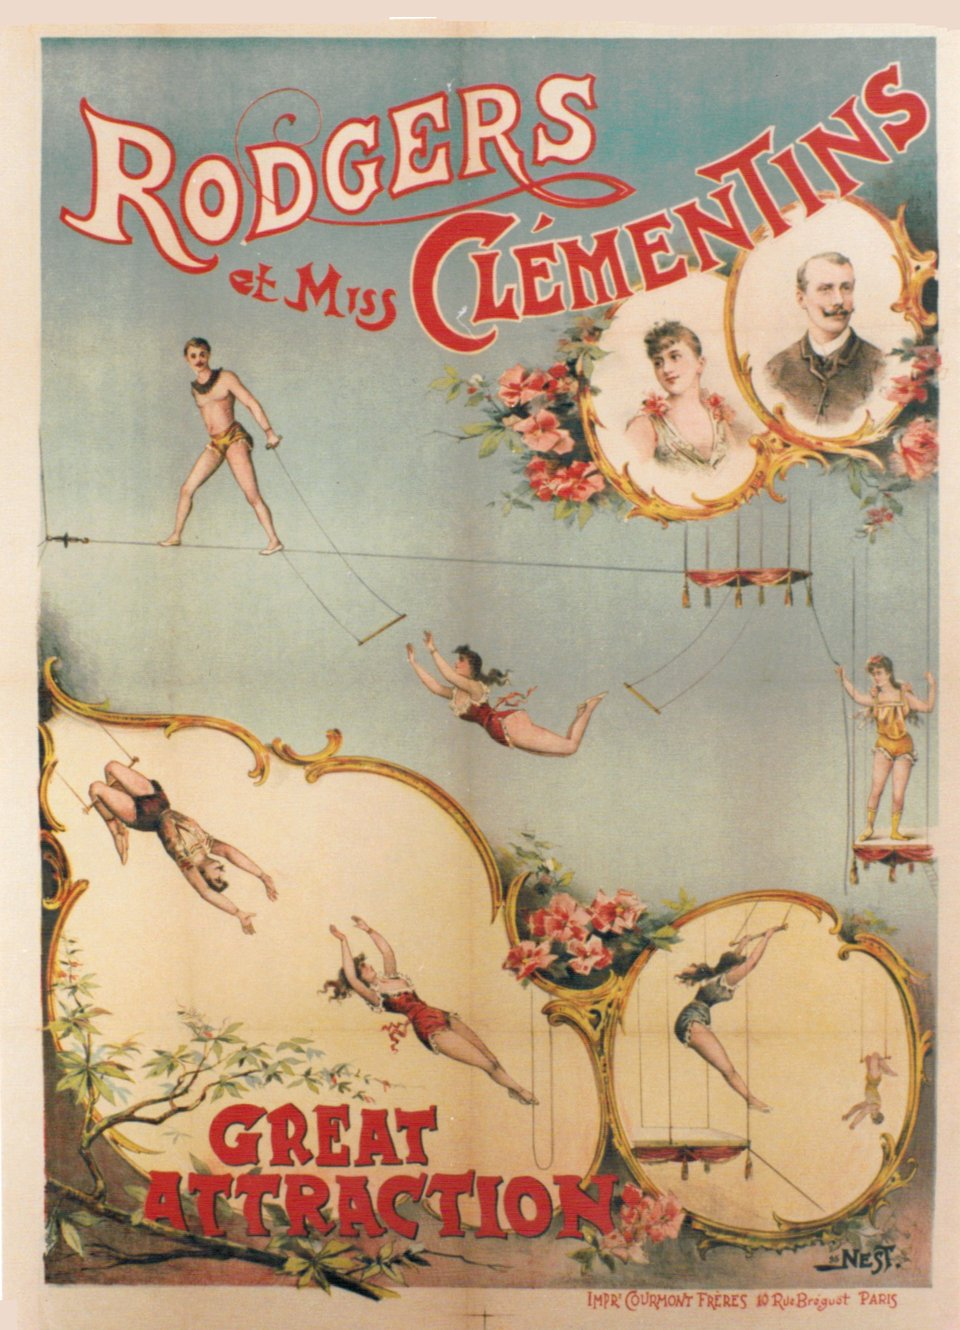 Rodgers et Miss Clémentins, Great Attraction – Vintage poster – NEST – 1895